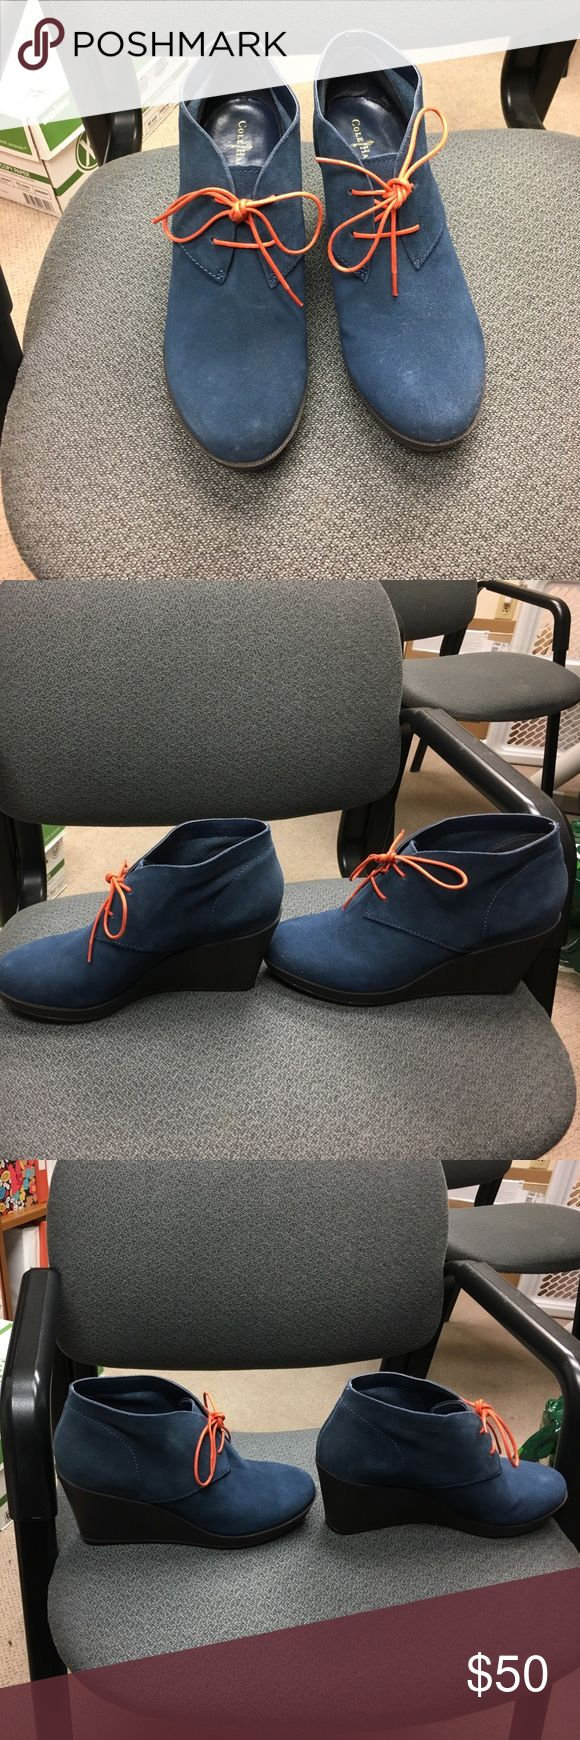 Cole Hann blue suede wedge booties. Cole Haan blue suede booties in a wedge style. Heels are 3 inches. I also have matching blue laces and pink laces and the box. Like new condition. Cole Haan Shoes Ankle Boots & Booties